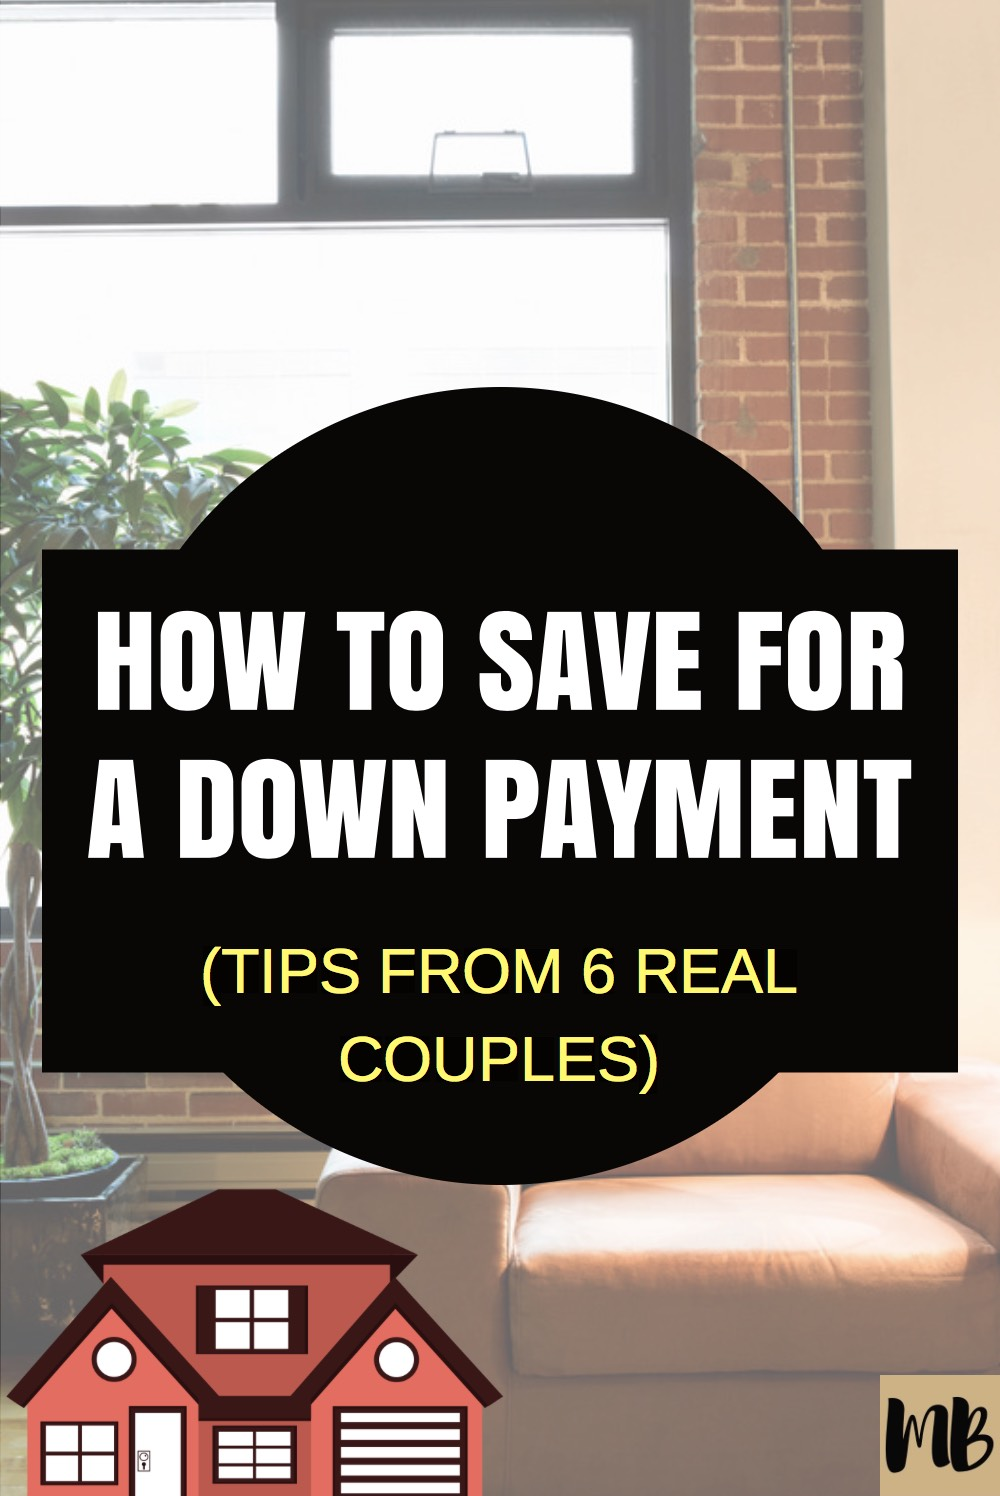 How to save for a home down payment - everything you need to know